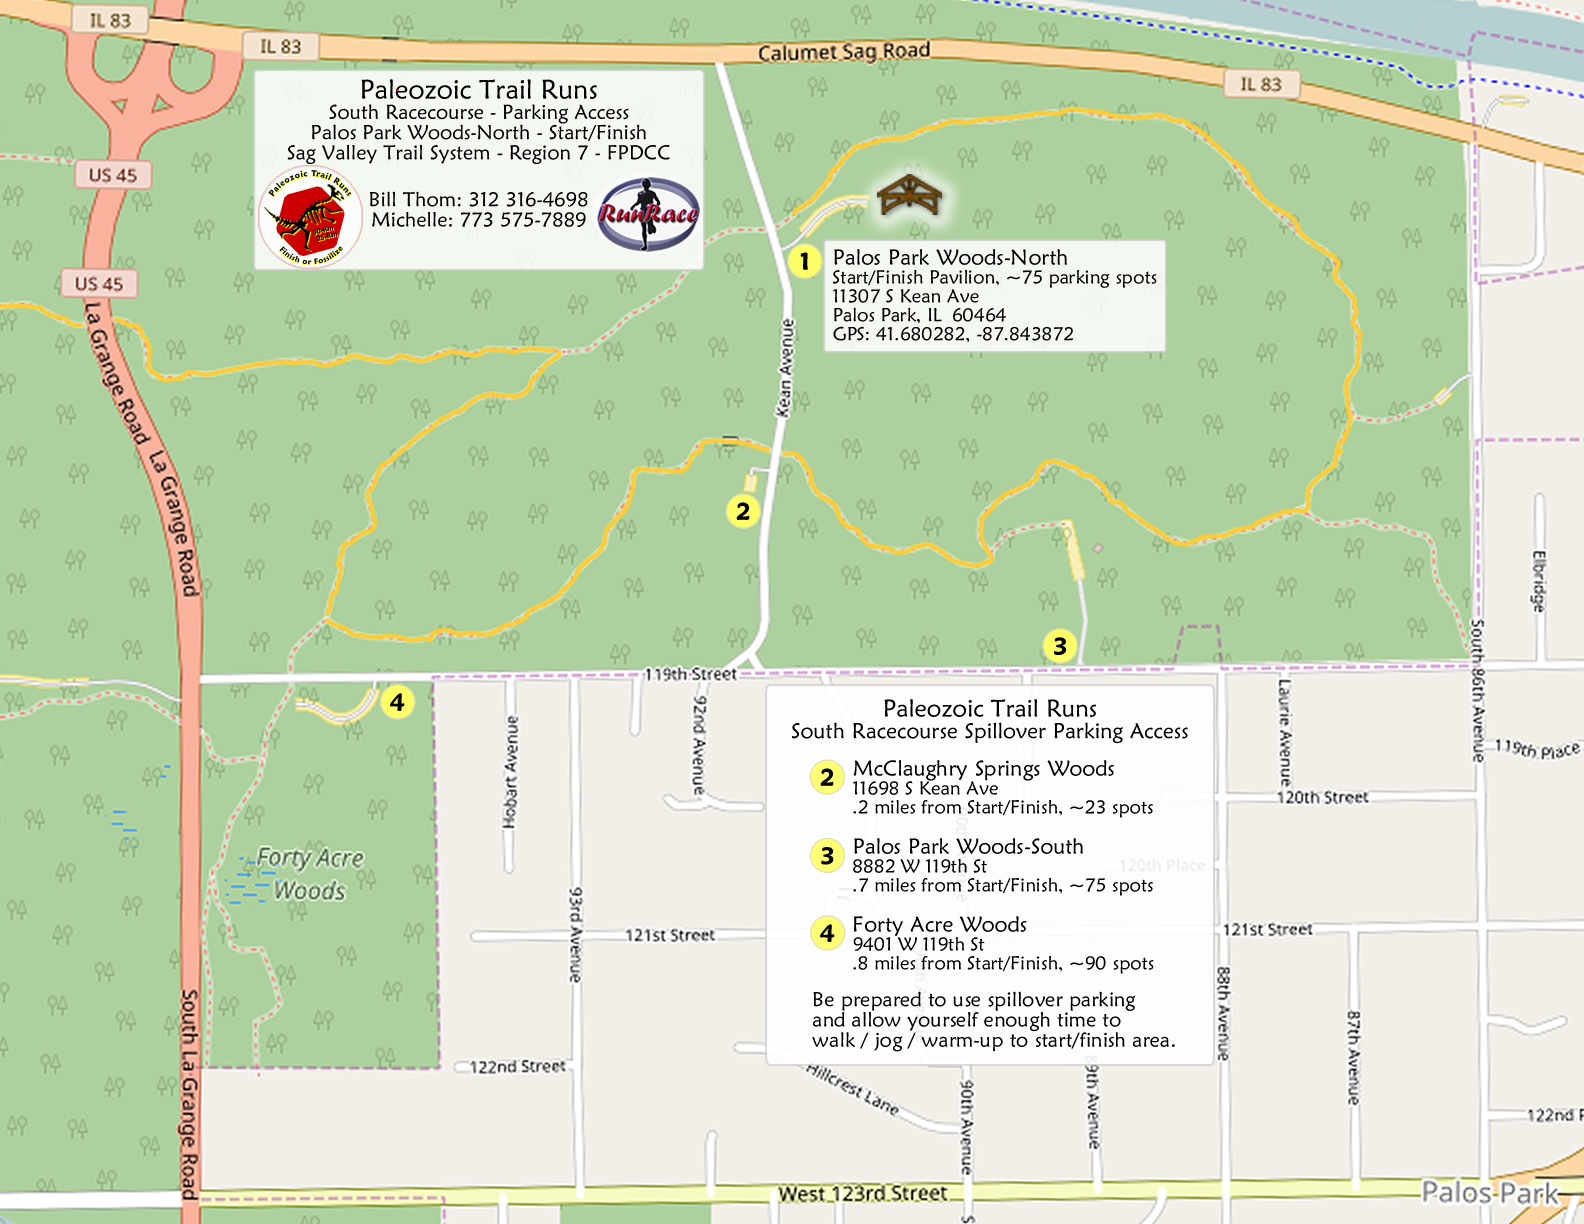 [parking map: Paleozoic Trail Runs - South Racecourse Parking Map]